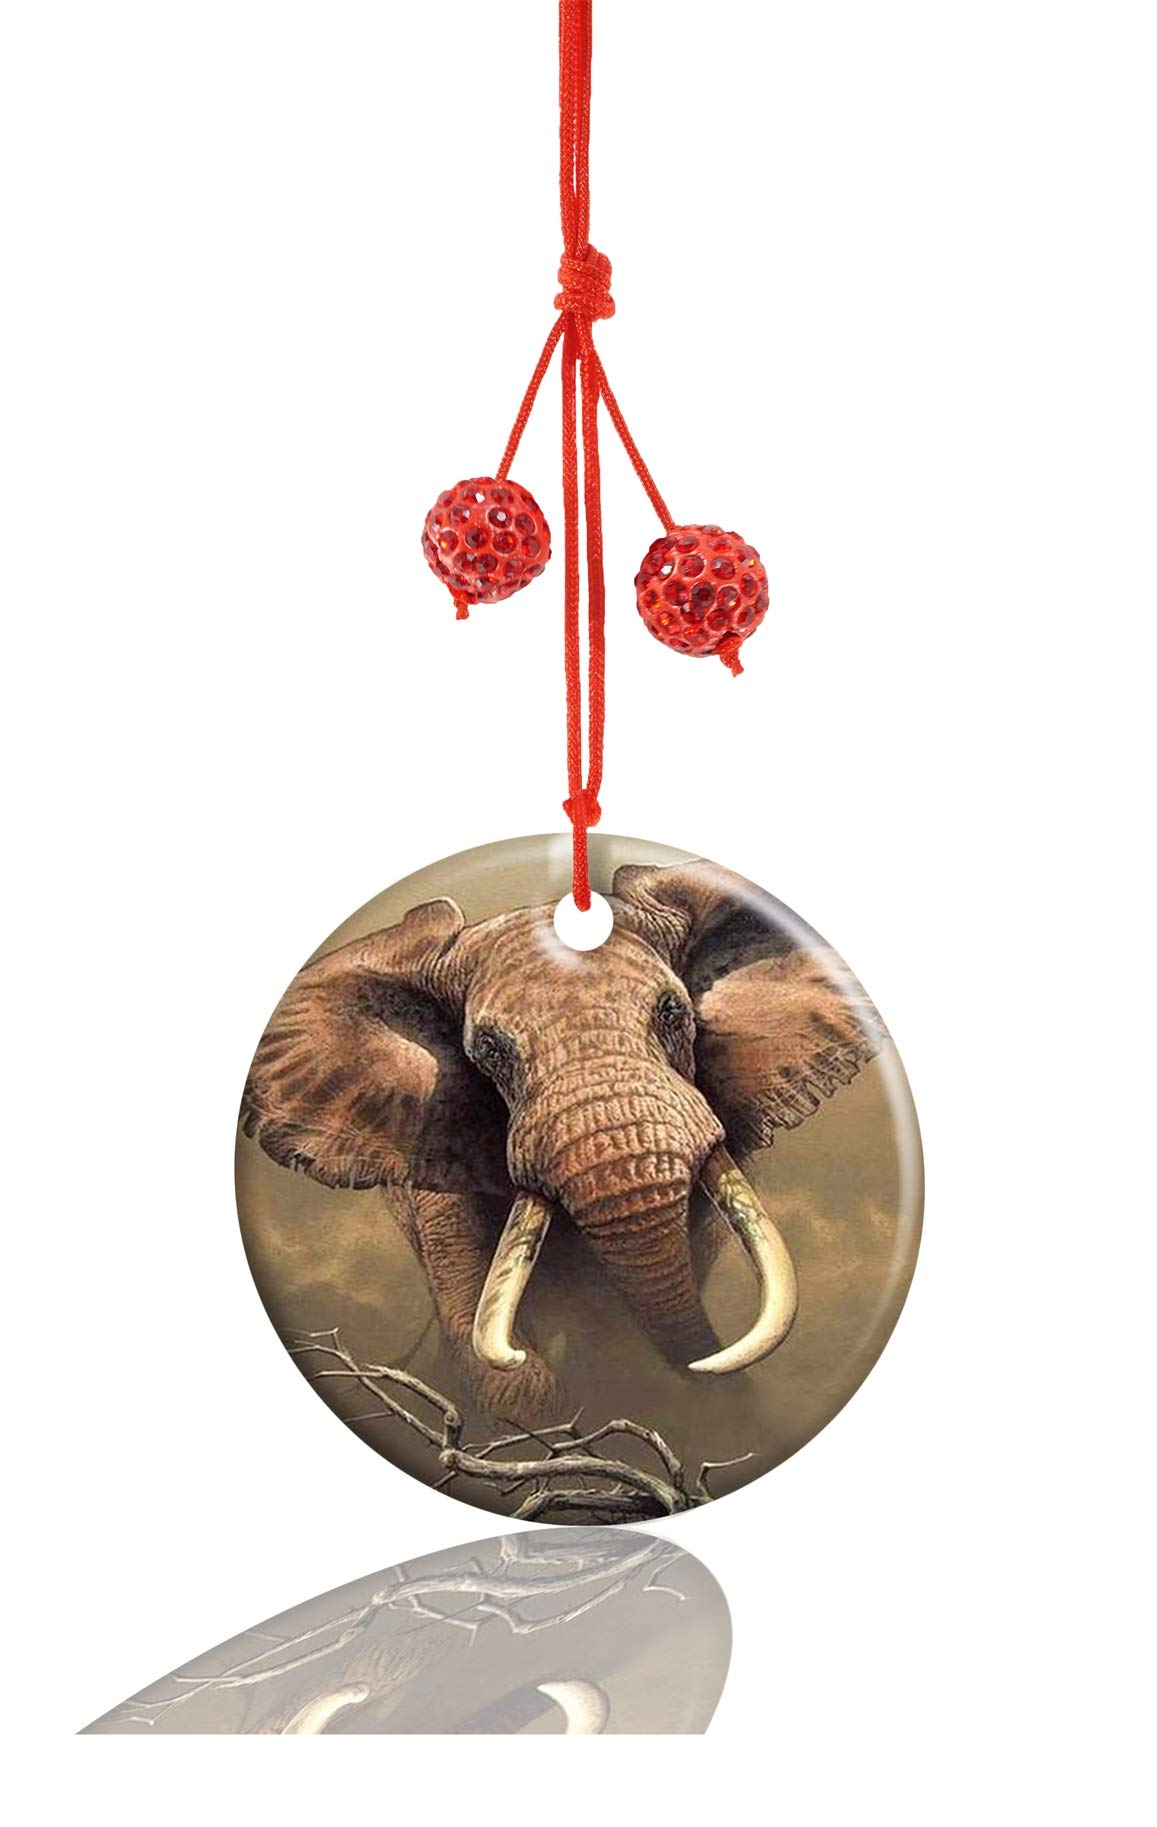 Youroom Animal Elephant Custom Round Porcelain Jewelry Ceramic Crafts Christmas Home Decoration Gift by Youroom (Image #1)